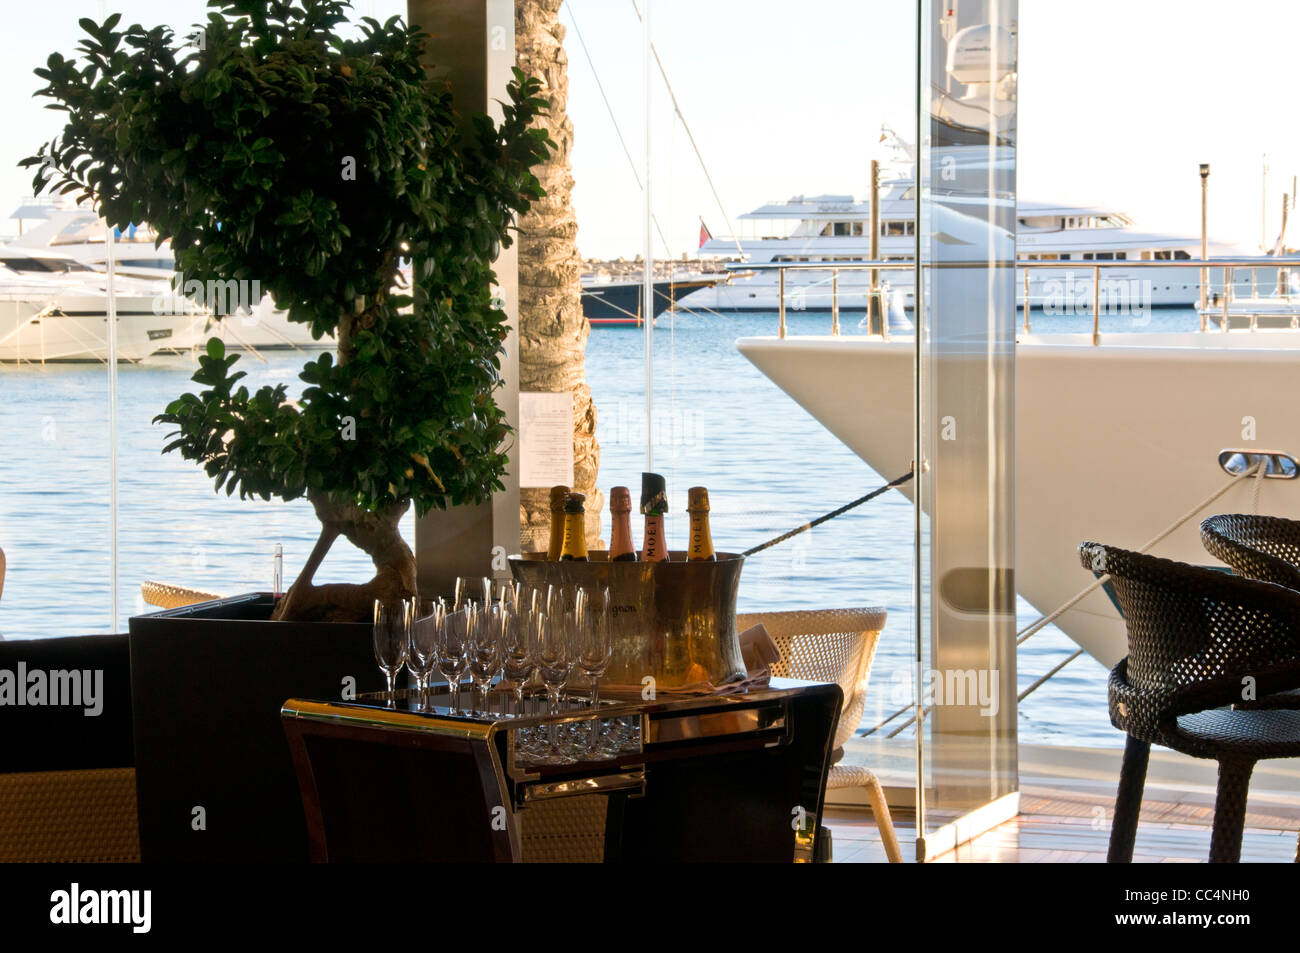 Variety of Champagnes and glasses with cooler in waterside restaurant bar luxury marina resort Puerto Portals Mallorca - Stock Image